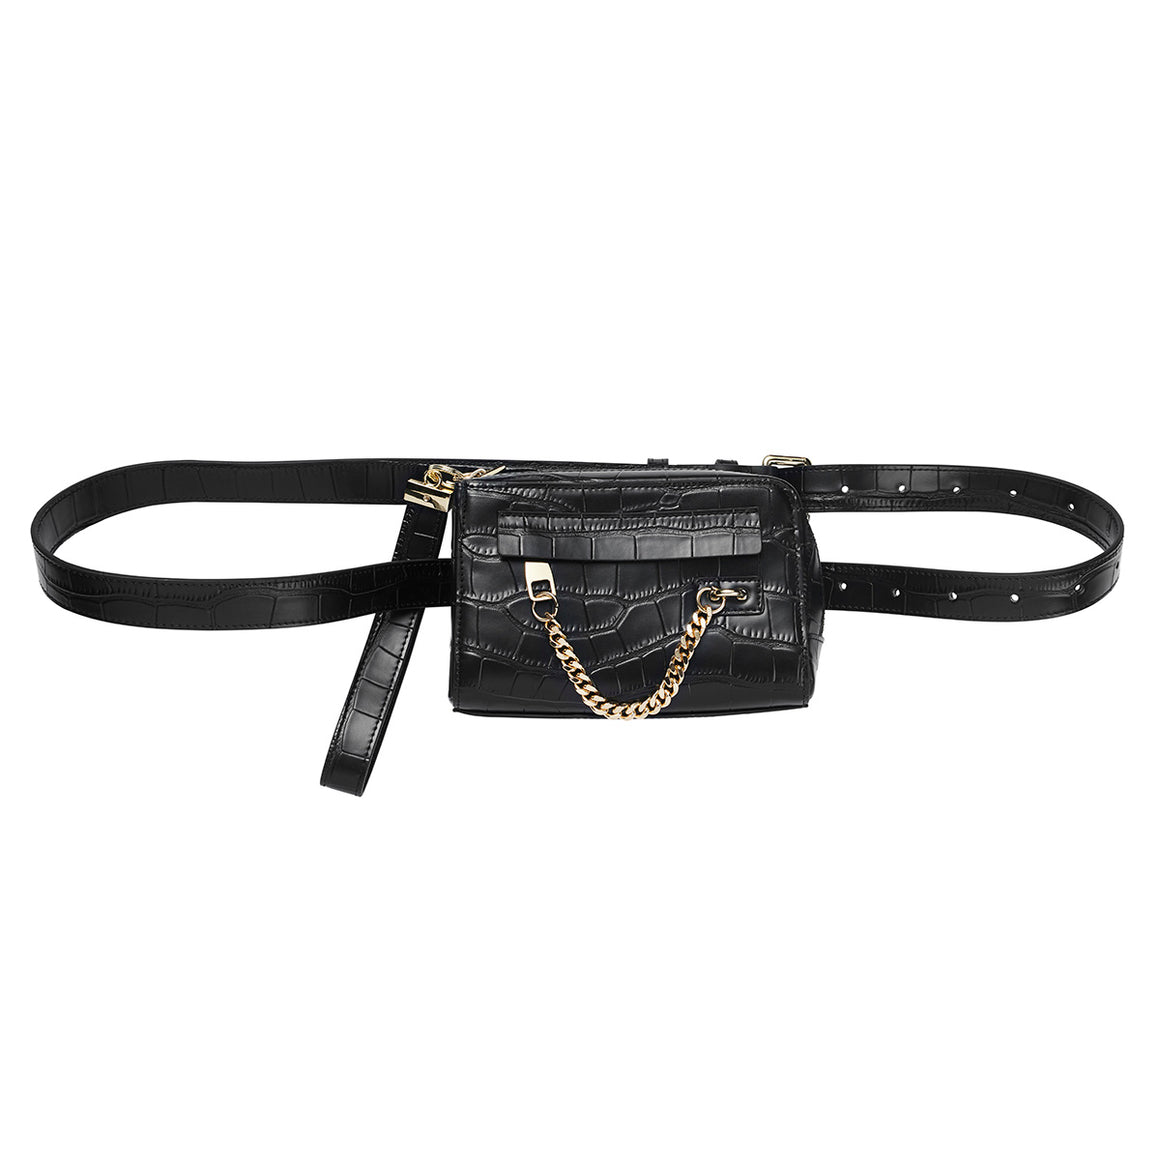 CONTRAST FANNY PACK 8OR X JILL JACOBS BY TDE